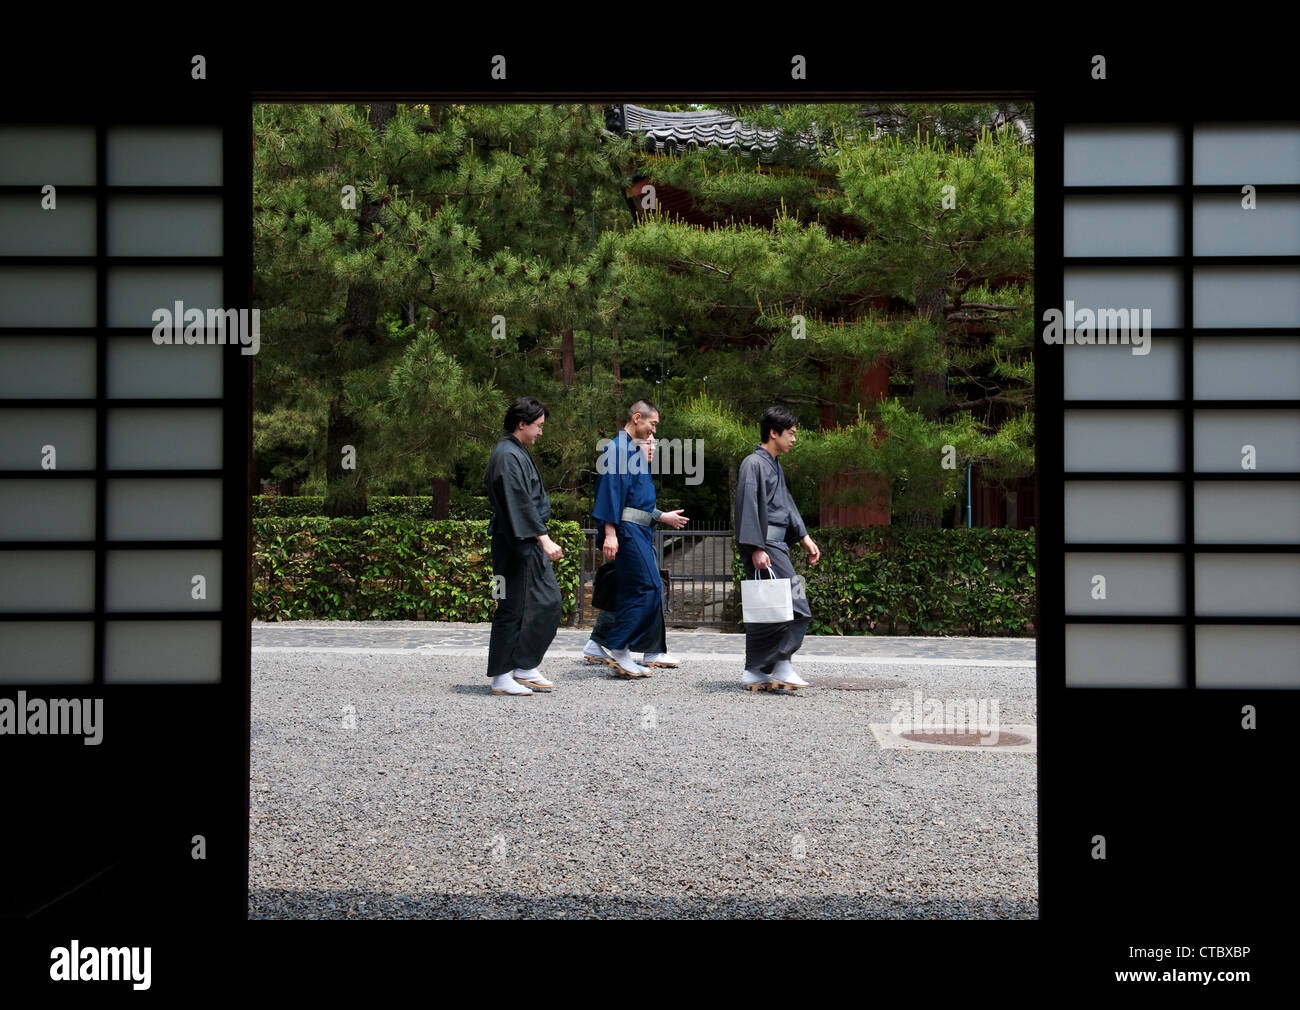 Daitoku-ji temple, Kyoto, Japan. Men wearing yukata, lightweight summer kimonos - Stock Image